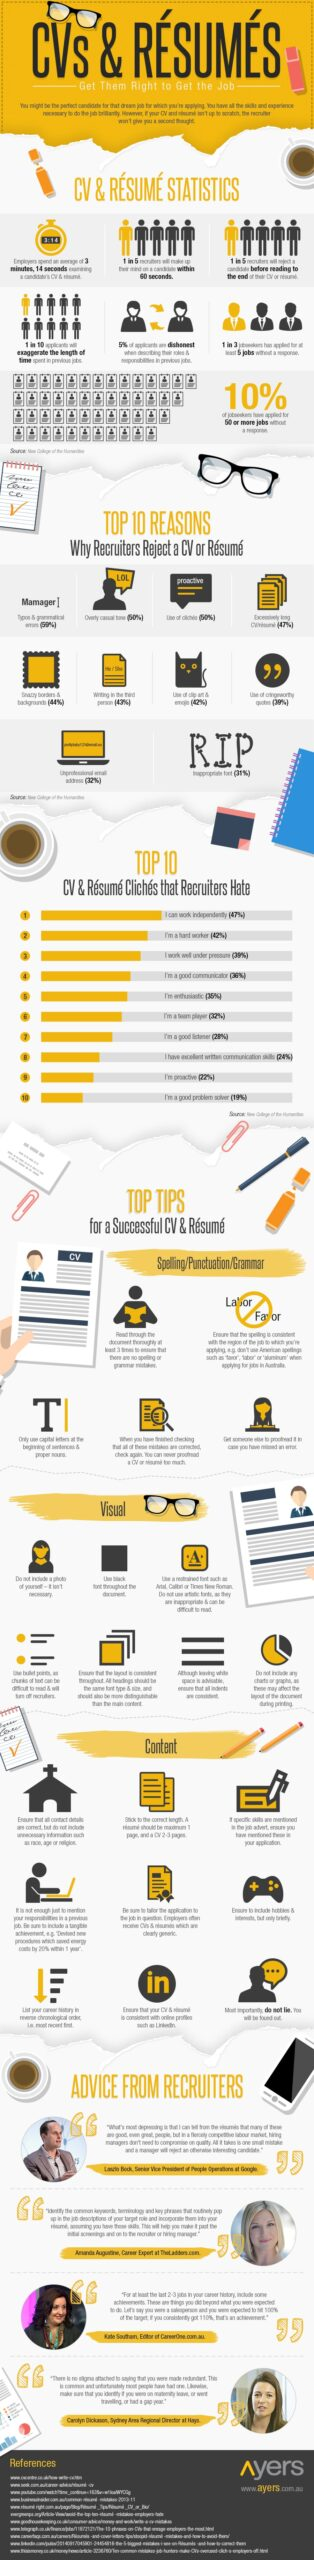 top resume mistakes that could cost you the job post anonymously cvs resumes get them Resume Post Resume Anonymously